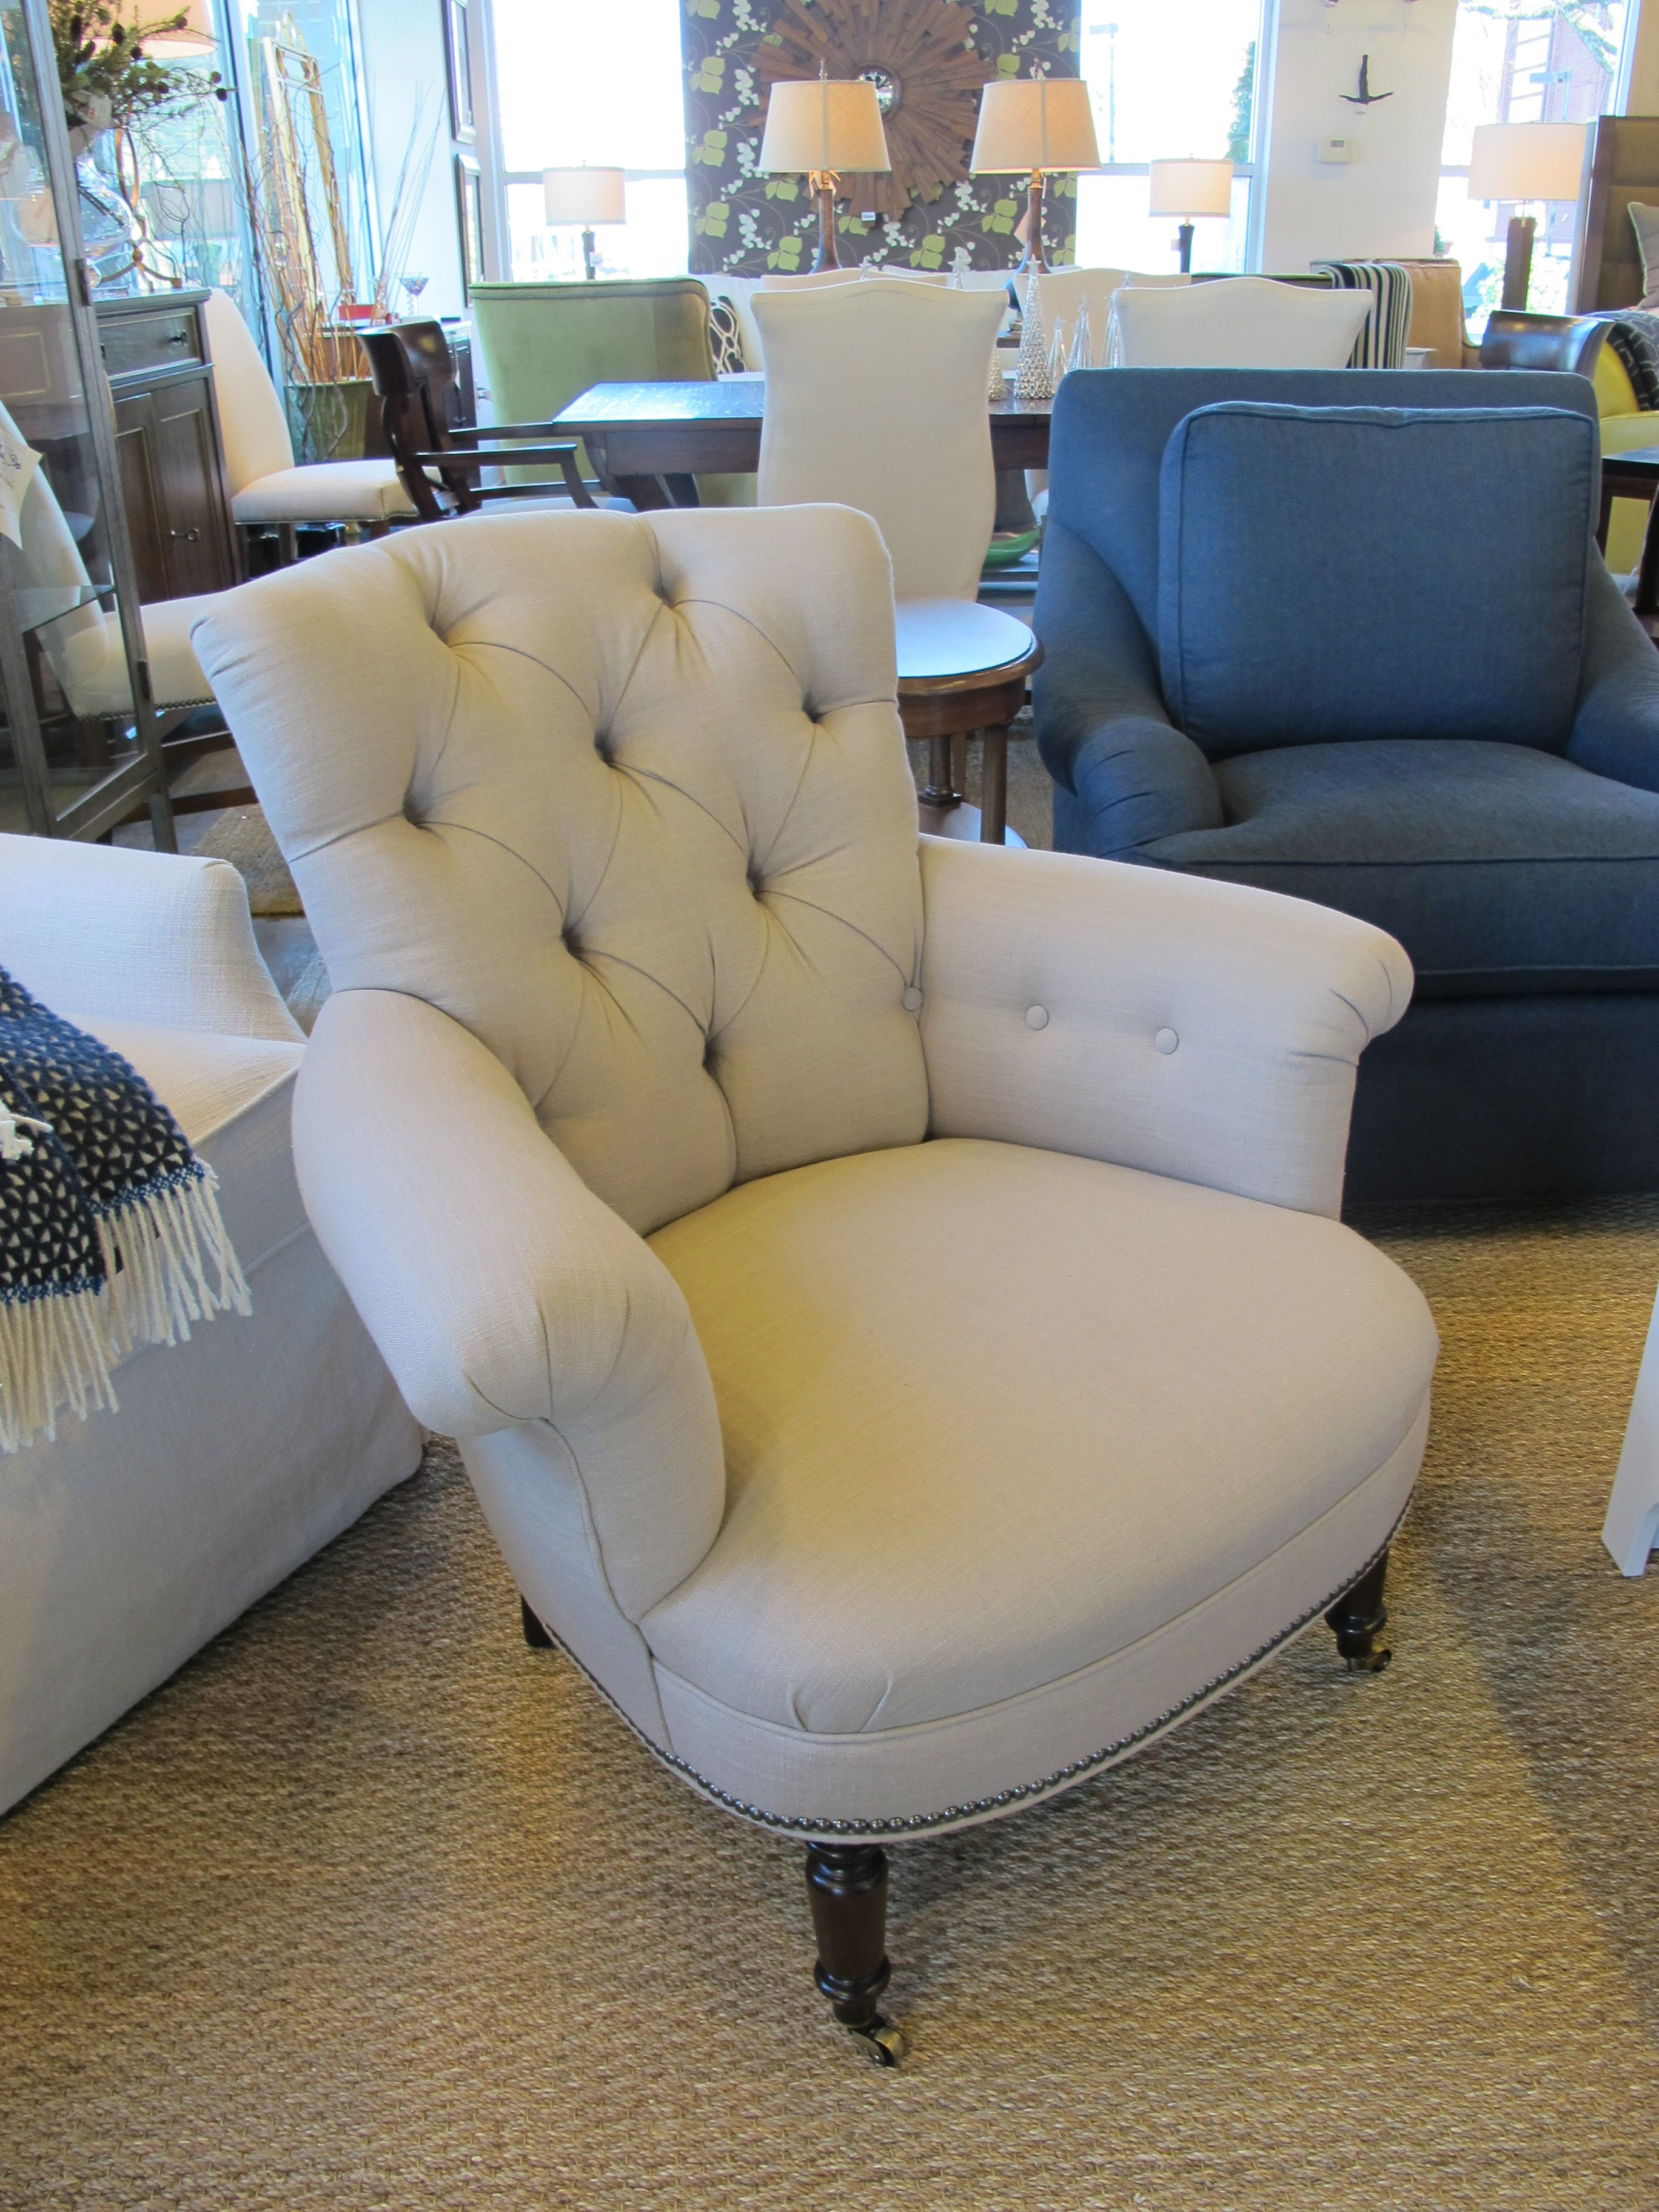 A small scale tufted chair is comfy and will fit in tight